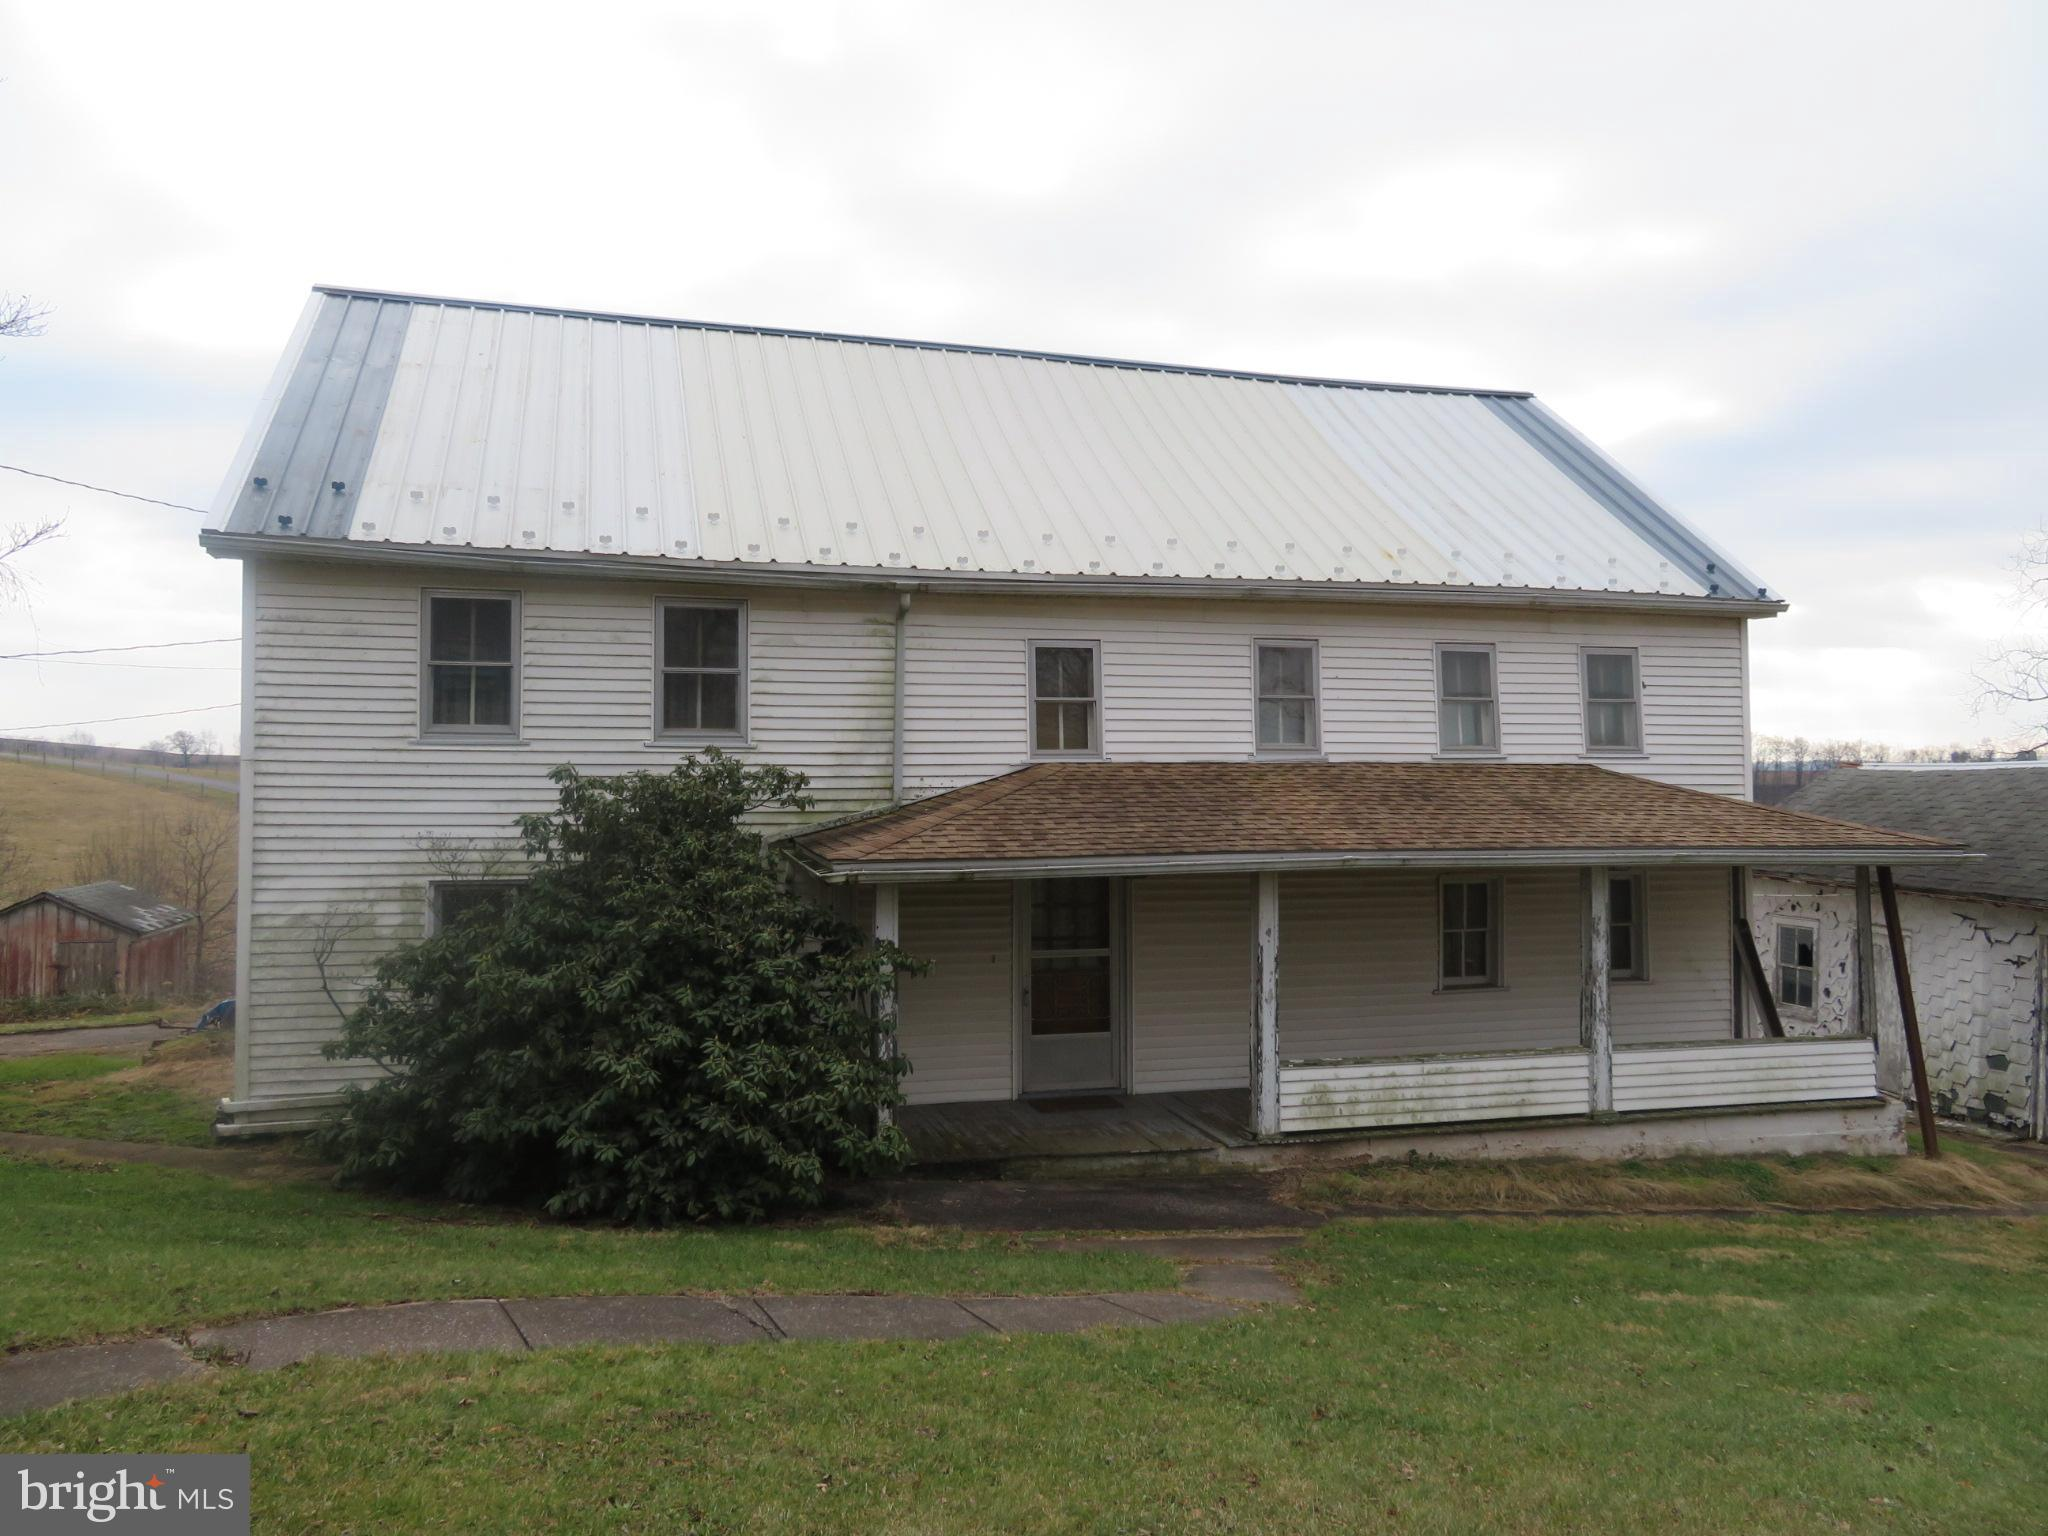 155 acres with a large 2-story, 5-bedroom farm house. Large L-shaped bank barn. 40' x 130' coverall building. Many other shops/garages, some of which are 20' x 34', 30' x 56', 22' x 30', 28' x 34', and a 36' x 72' heifer barn. Approximately 100 acres tillable, 40 acres of pasture, and 12 acres wooded. Small stream on the property with a beautiful setting, currently set up for beef cattle. Property is part of multiple parcels - taxes will be adjusted.